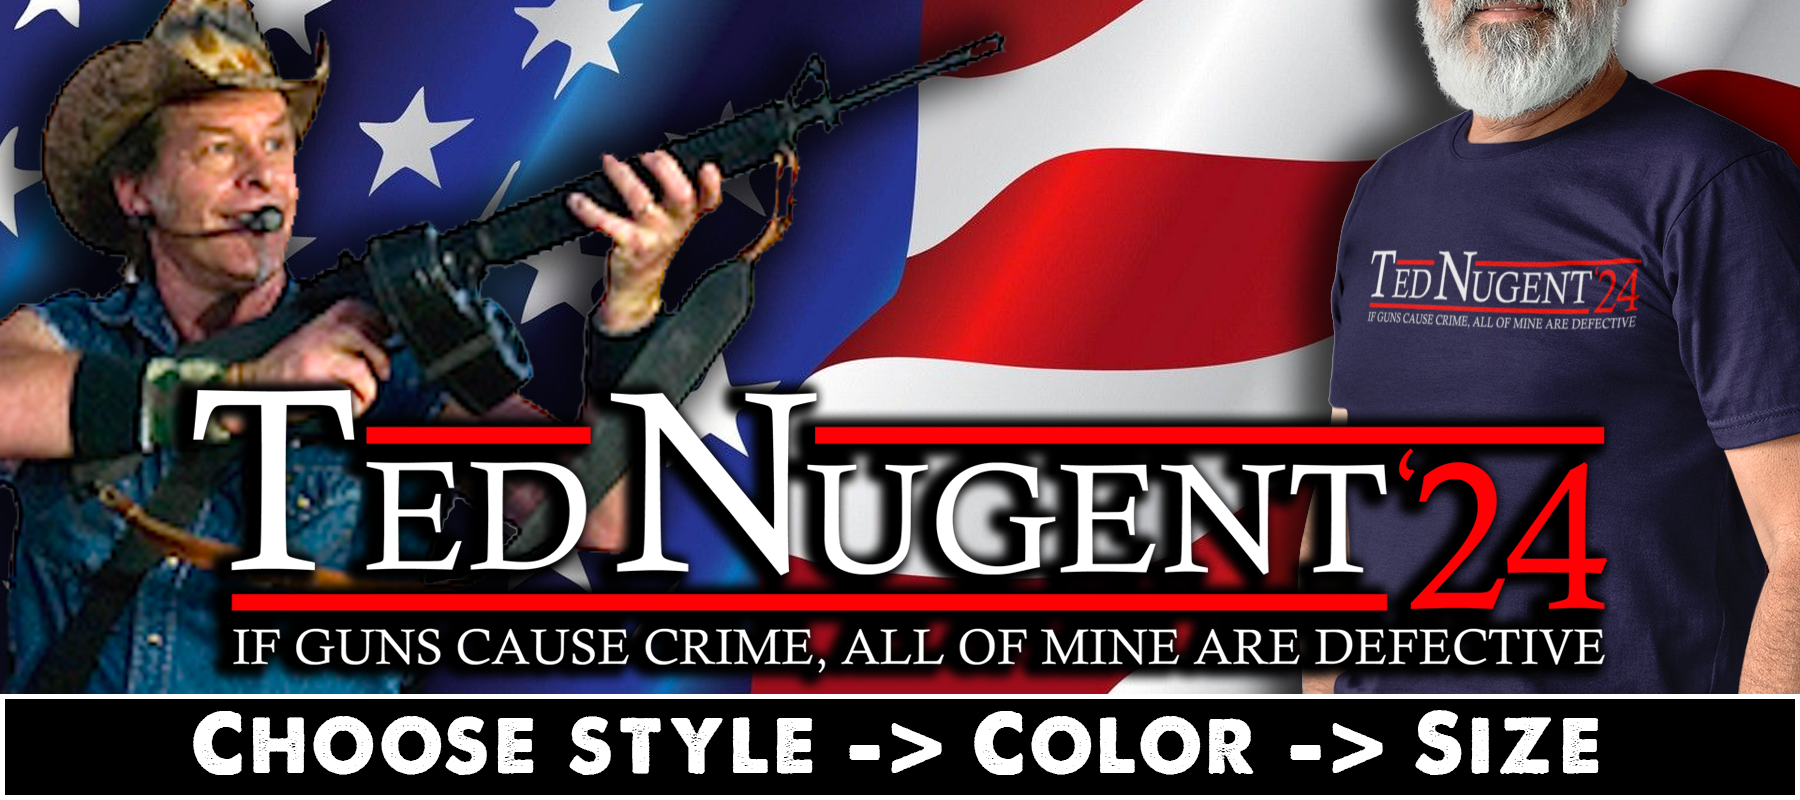 Ted Nugent 24 T-shirts, Hoodies & Mugs